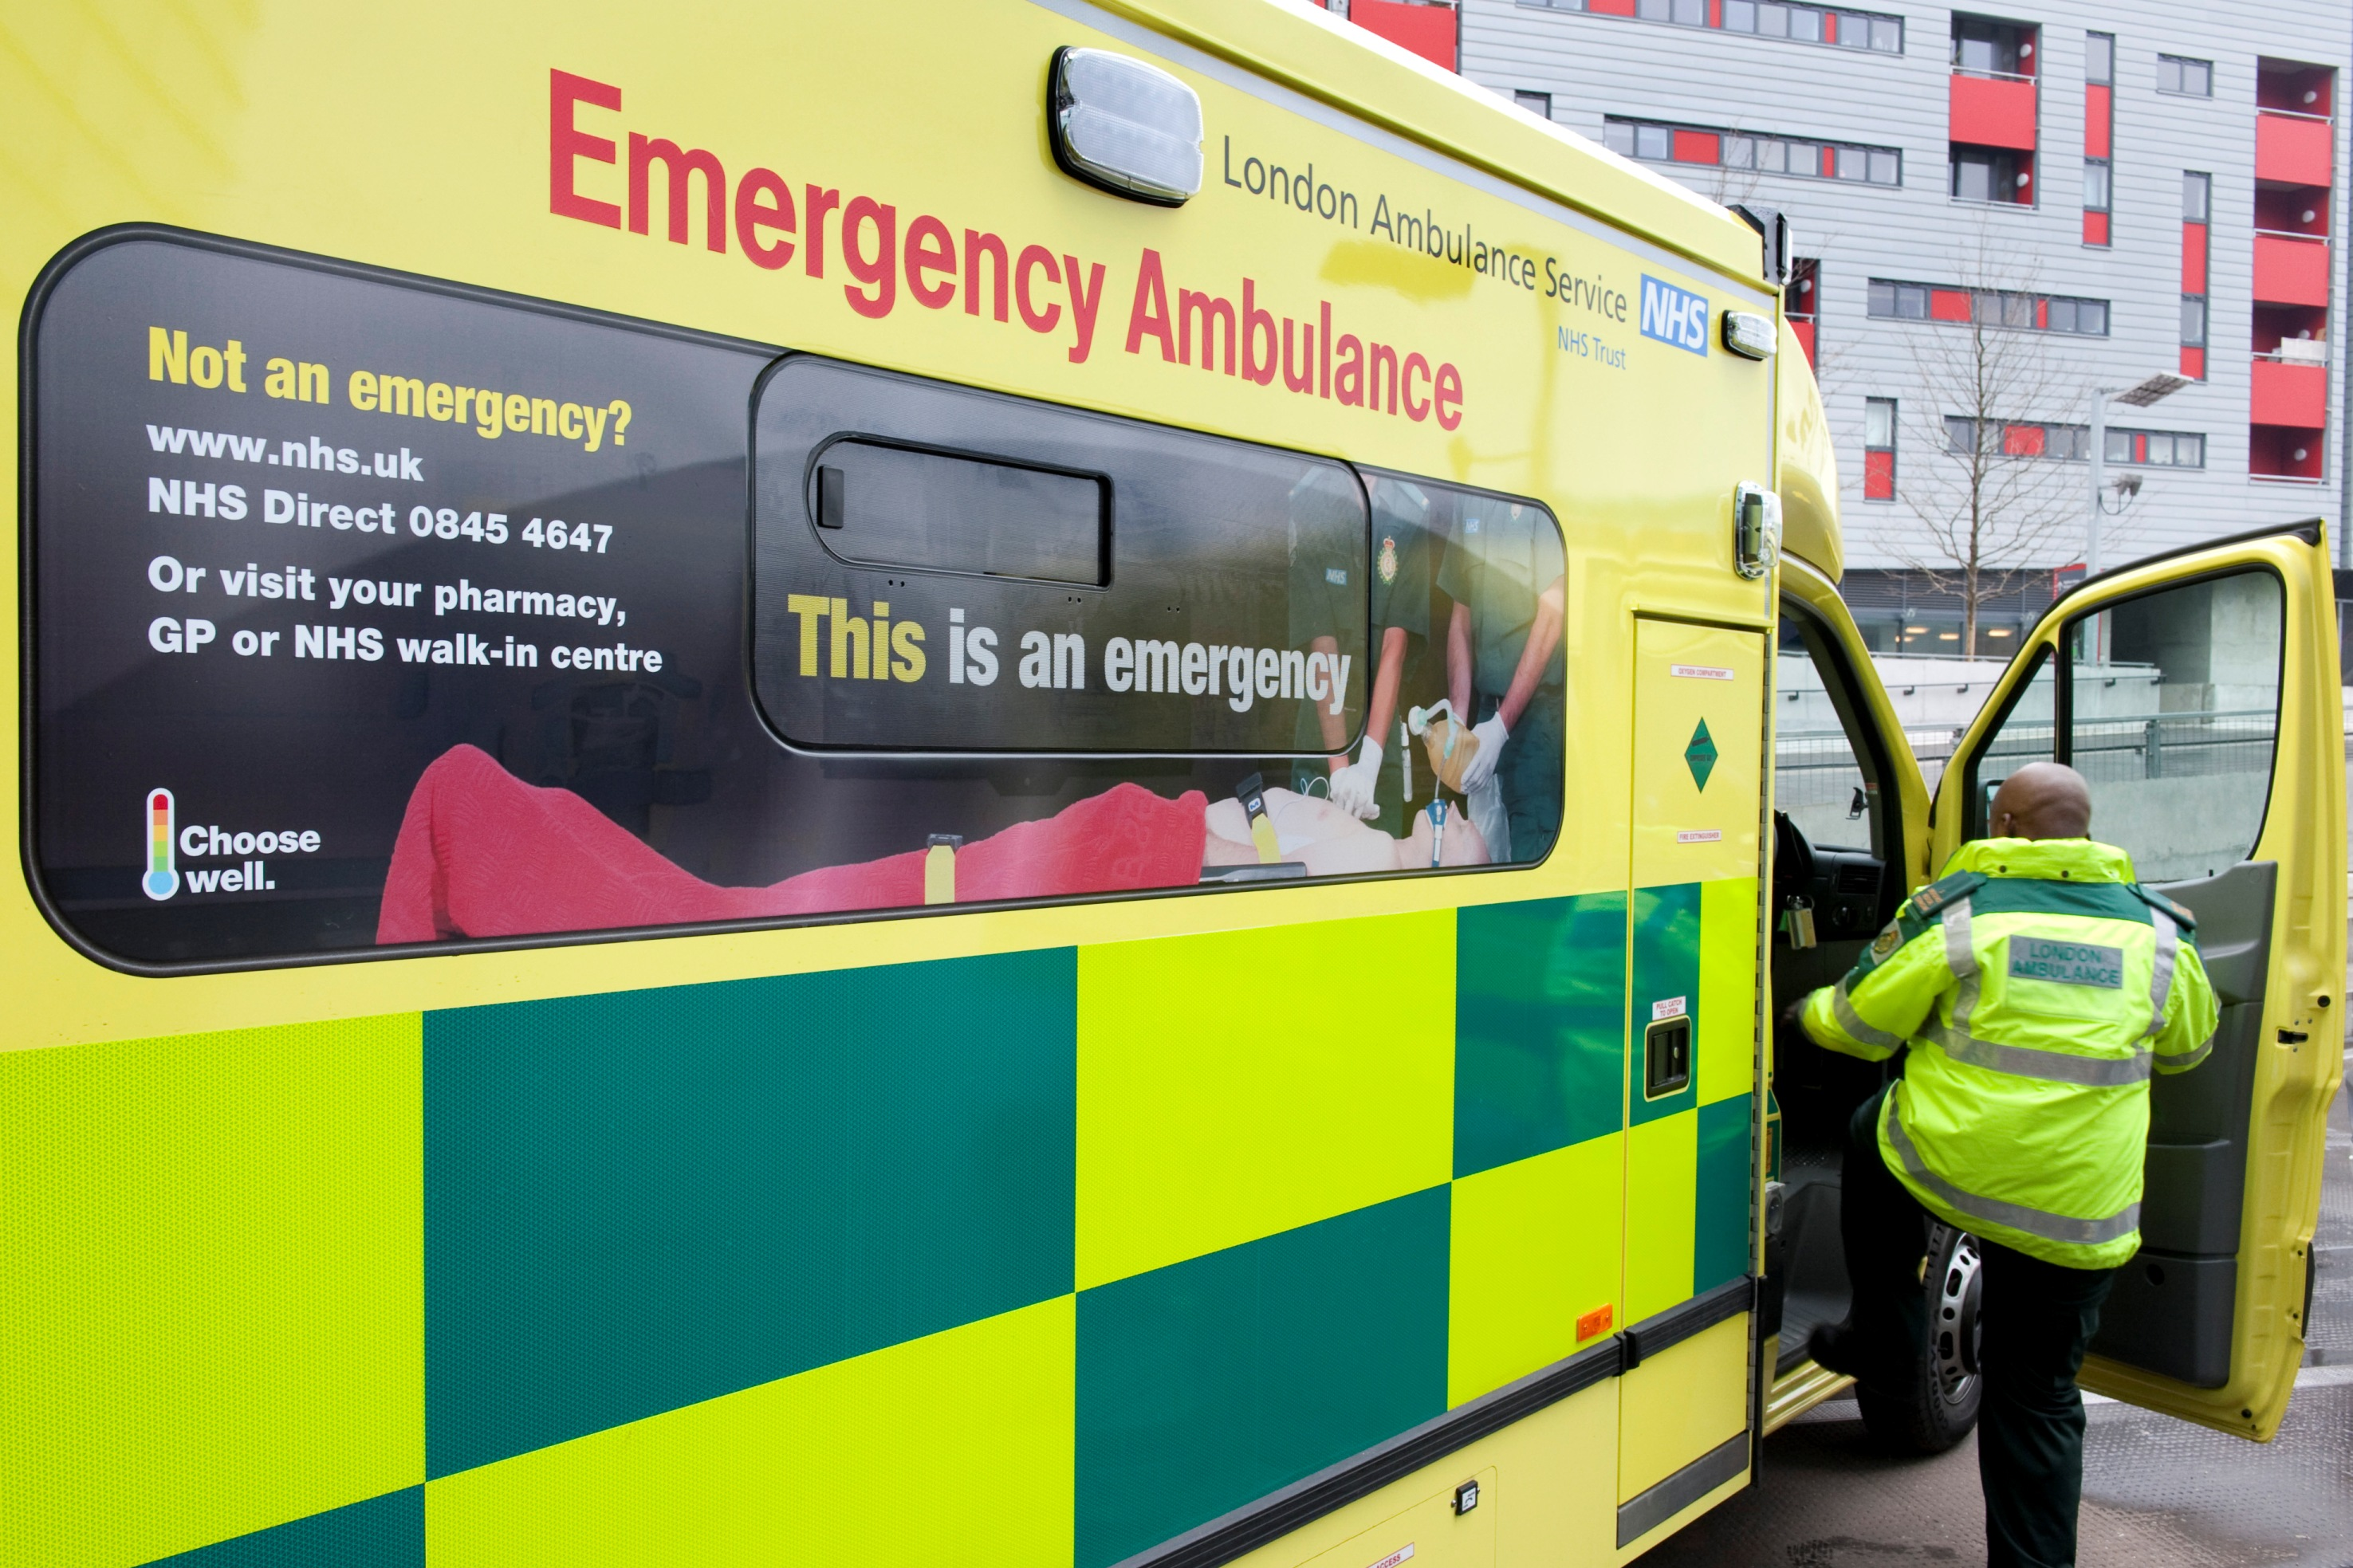 People think there are ambulances waiting to pick patients up - they are wrong (Picture: ES)